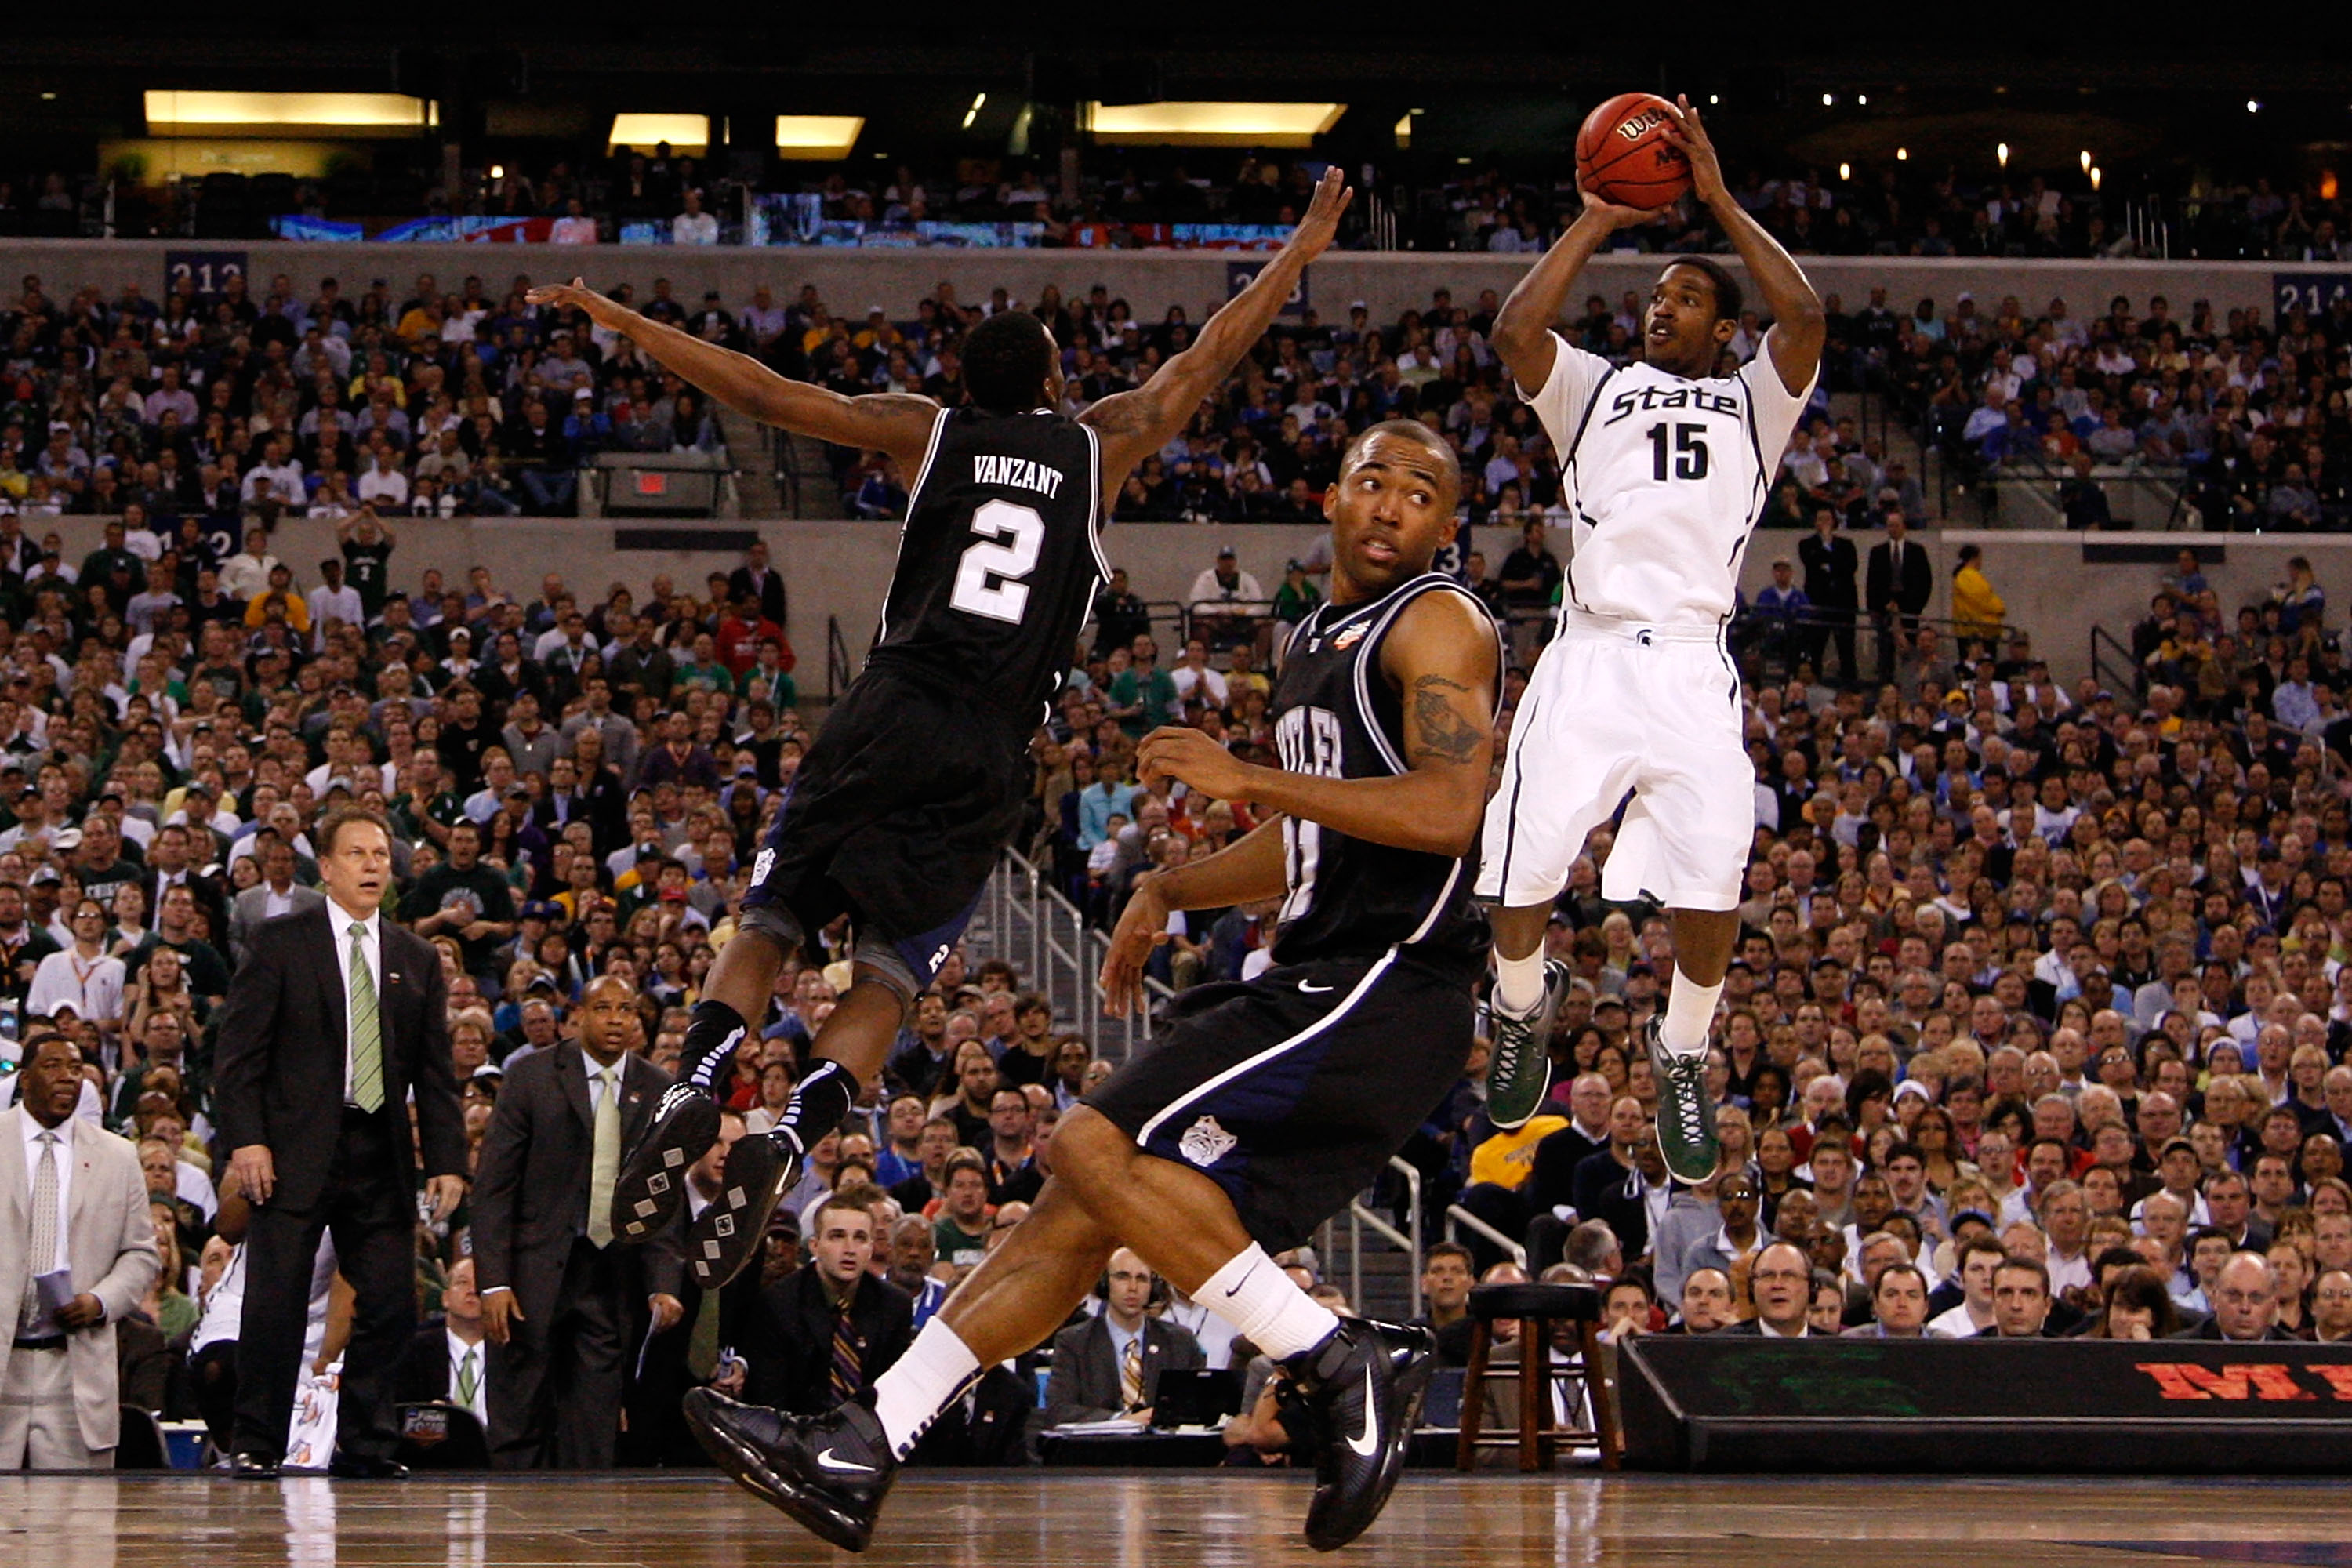 INDIANAPOLIS - APRIL 03:  Durrell Summers #15 of the Michigan State Spartans attempts a shot against Shawn Vanzant #2 of the Butler Bulldogs during the National Semifinal game of the 2010 NCAA Division I Men's Basketball Championship on April 3, 2010 in I